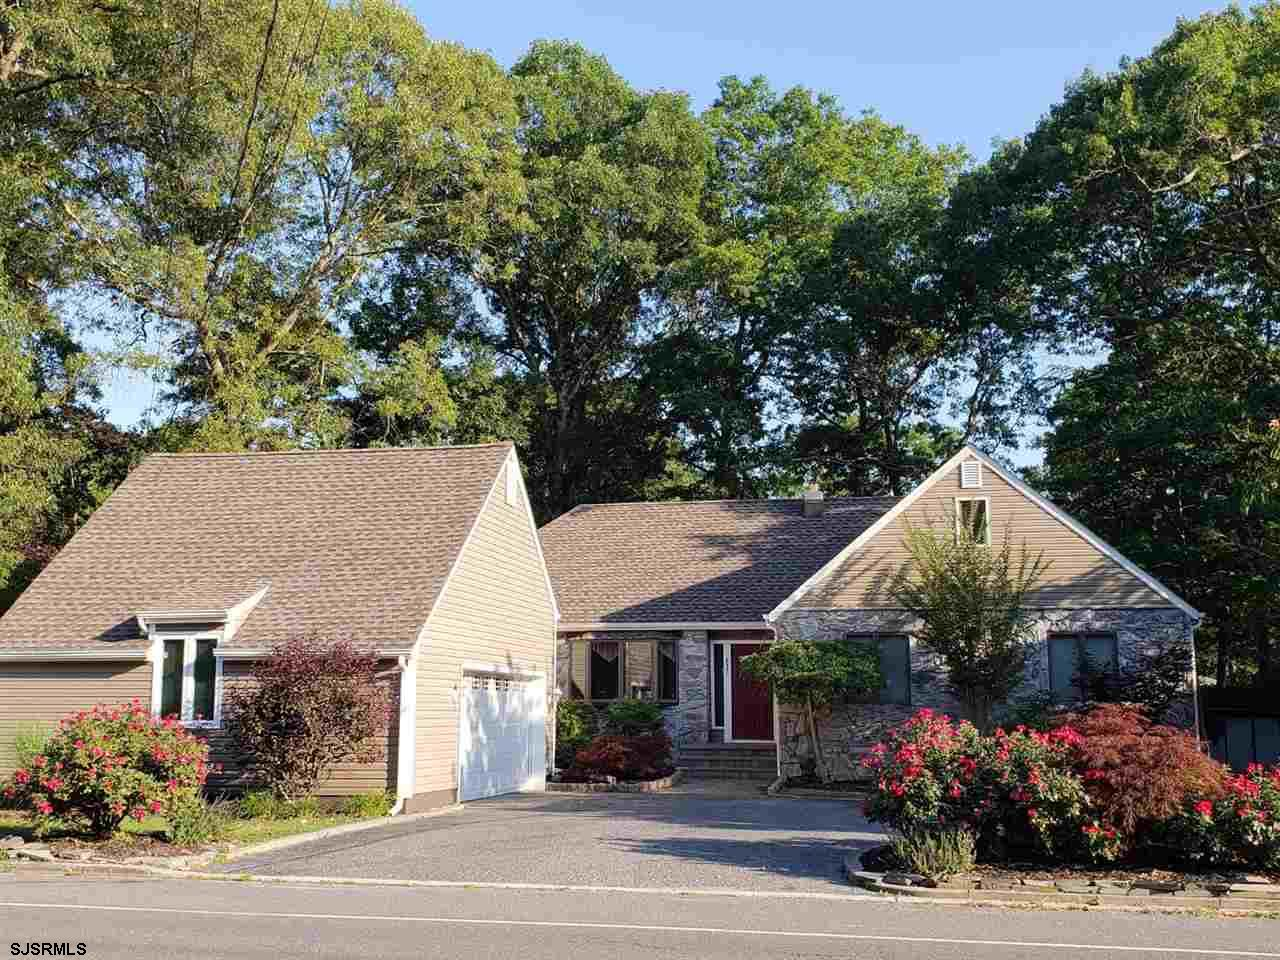 409 Mill Rd, Absecon, NJ, 08201